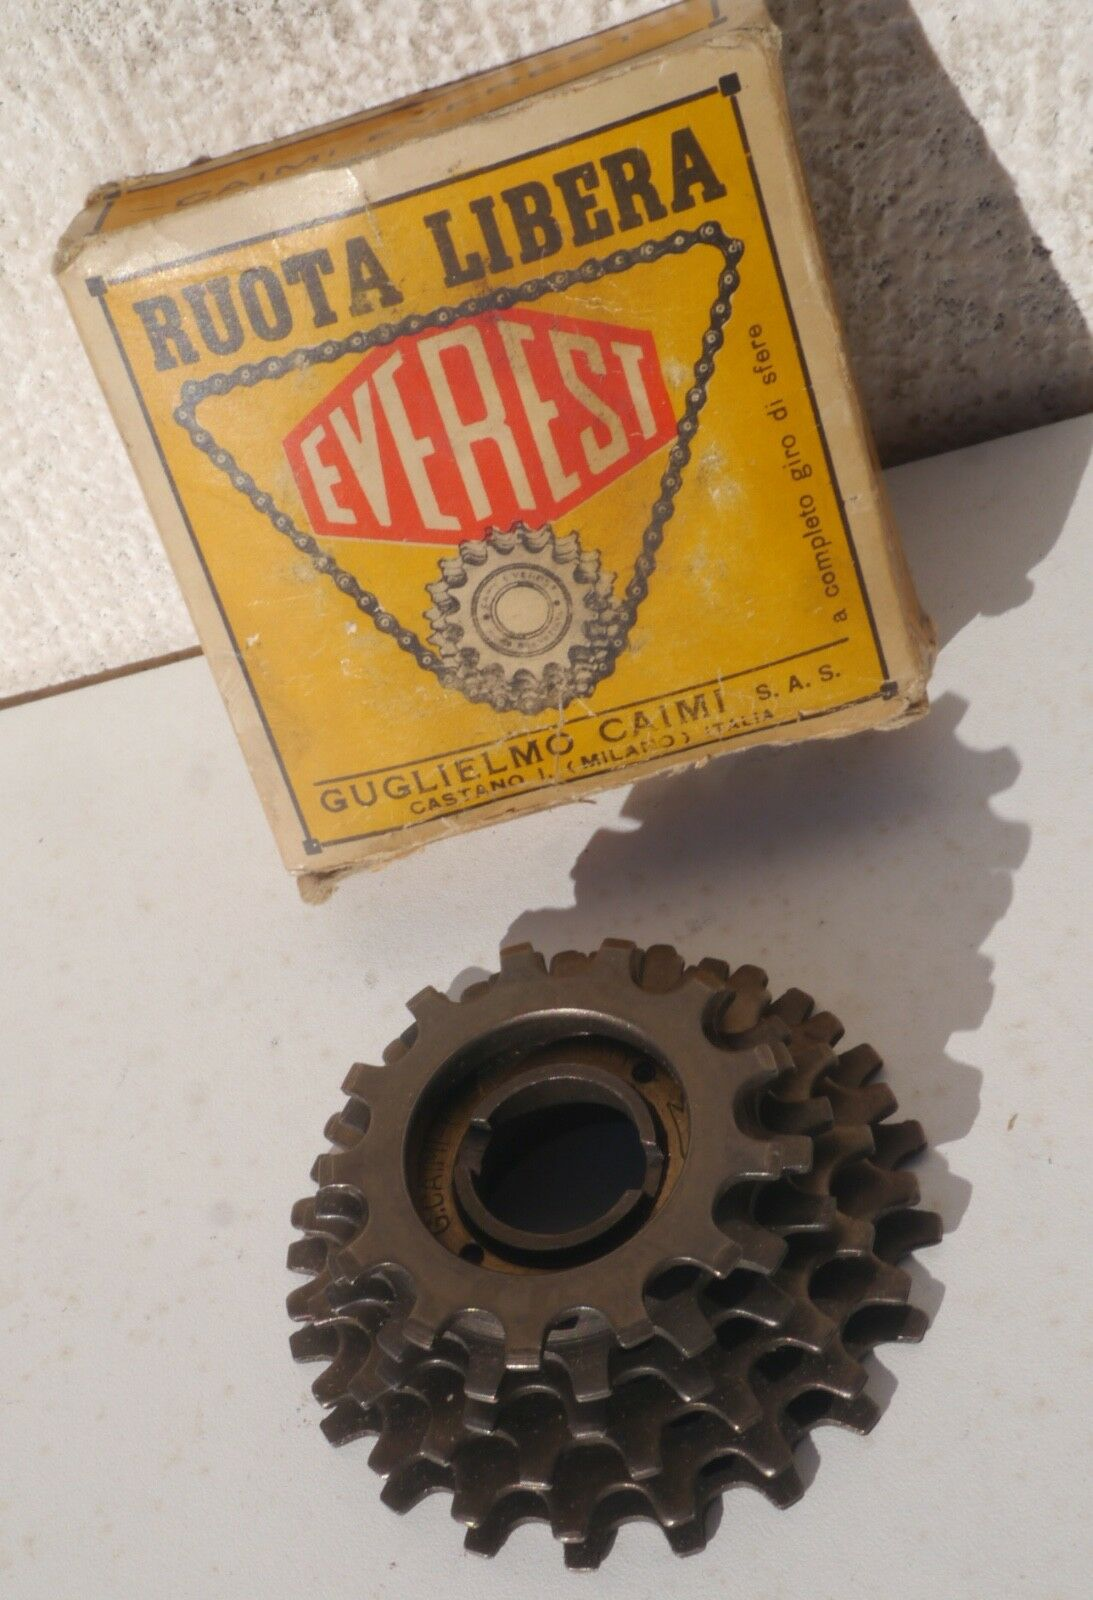 NIB Caimi Everest Special Corse 6s 13-20 freewheel, for vintage road bike